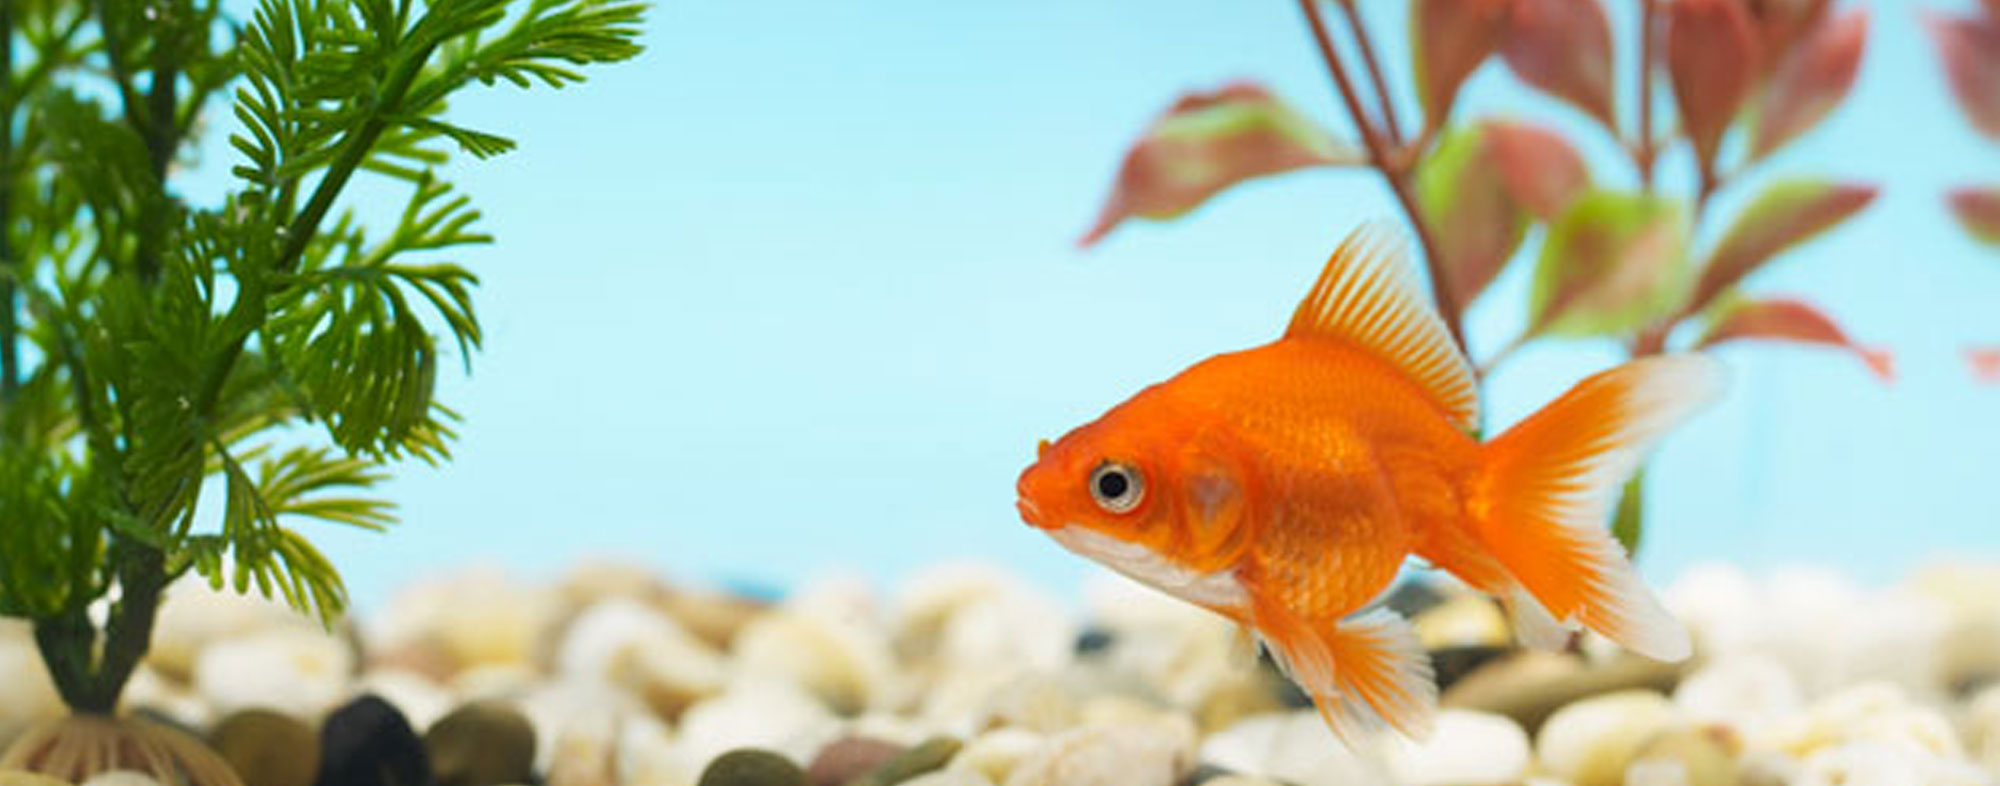 Your fish's aquarium shouldn't be surrounded by too much sunlight